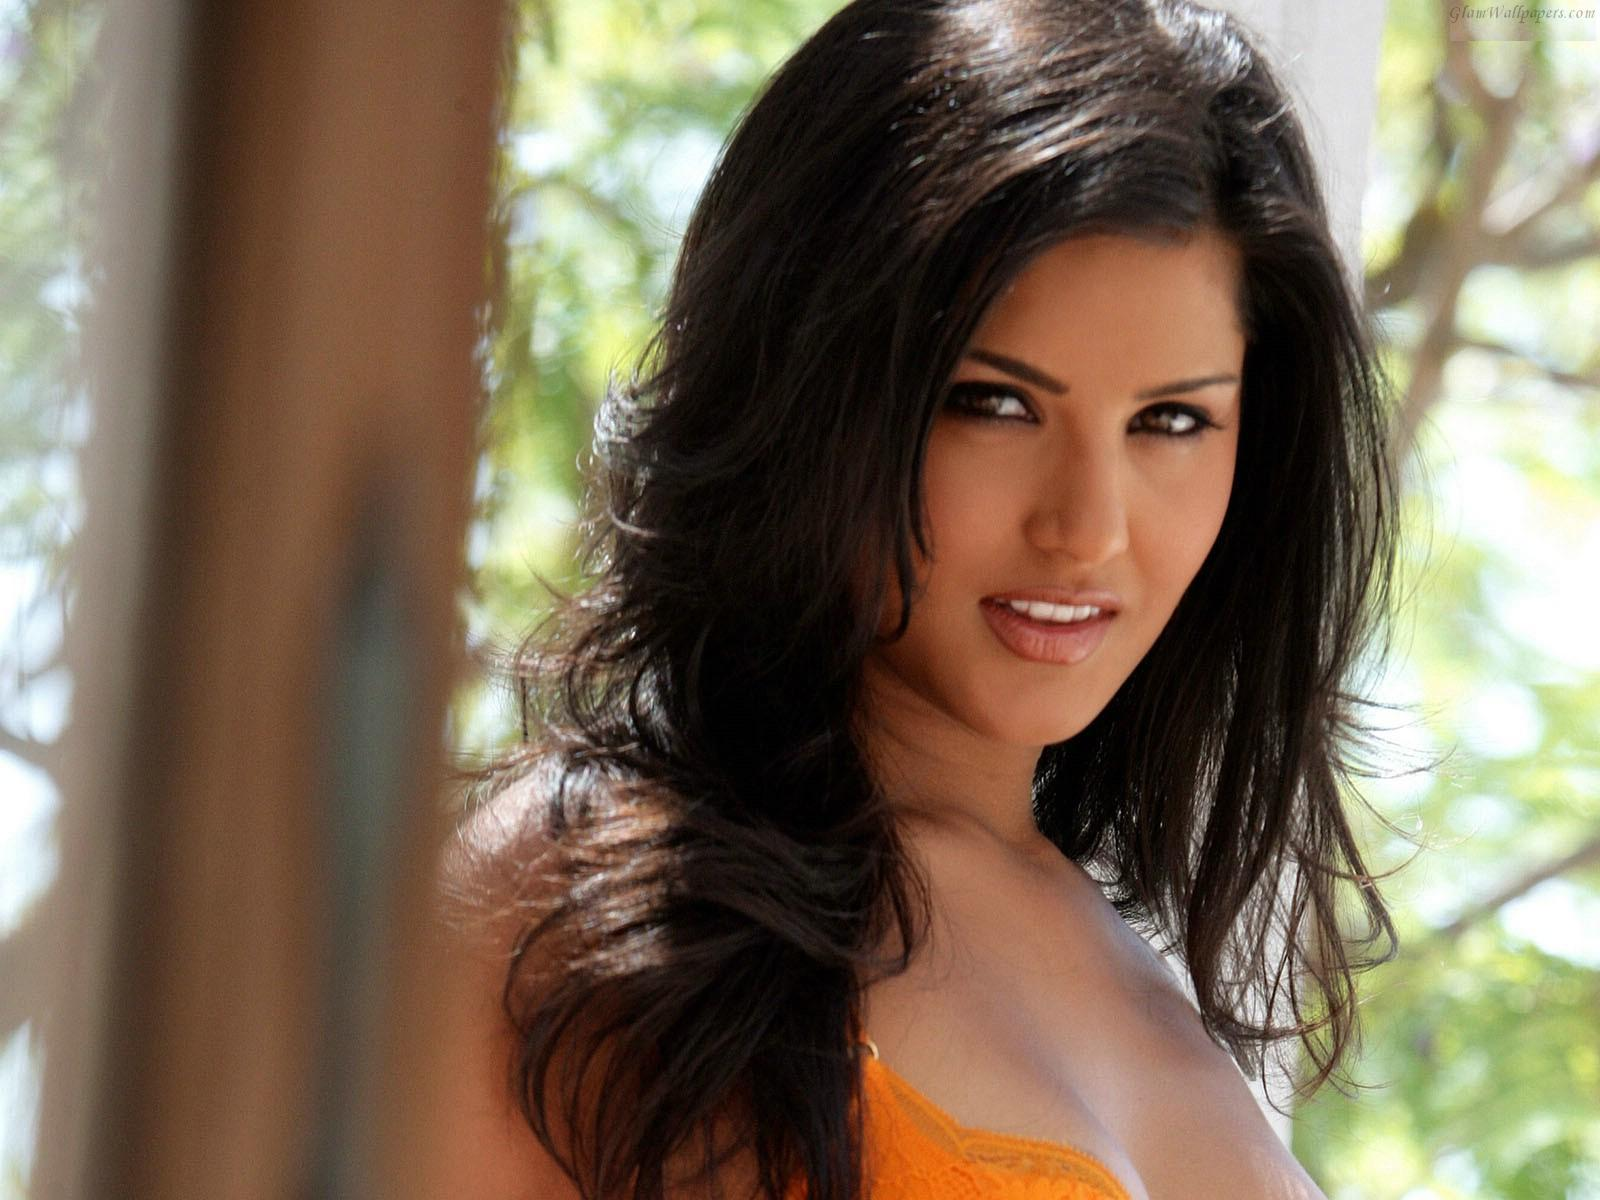 HD Wallpapers of Sunny Leone | HD Wallpapers